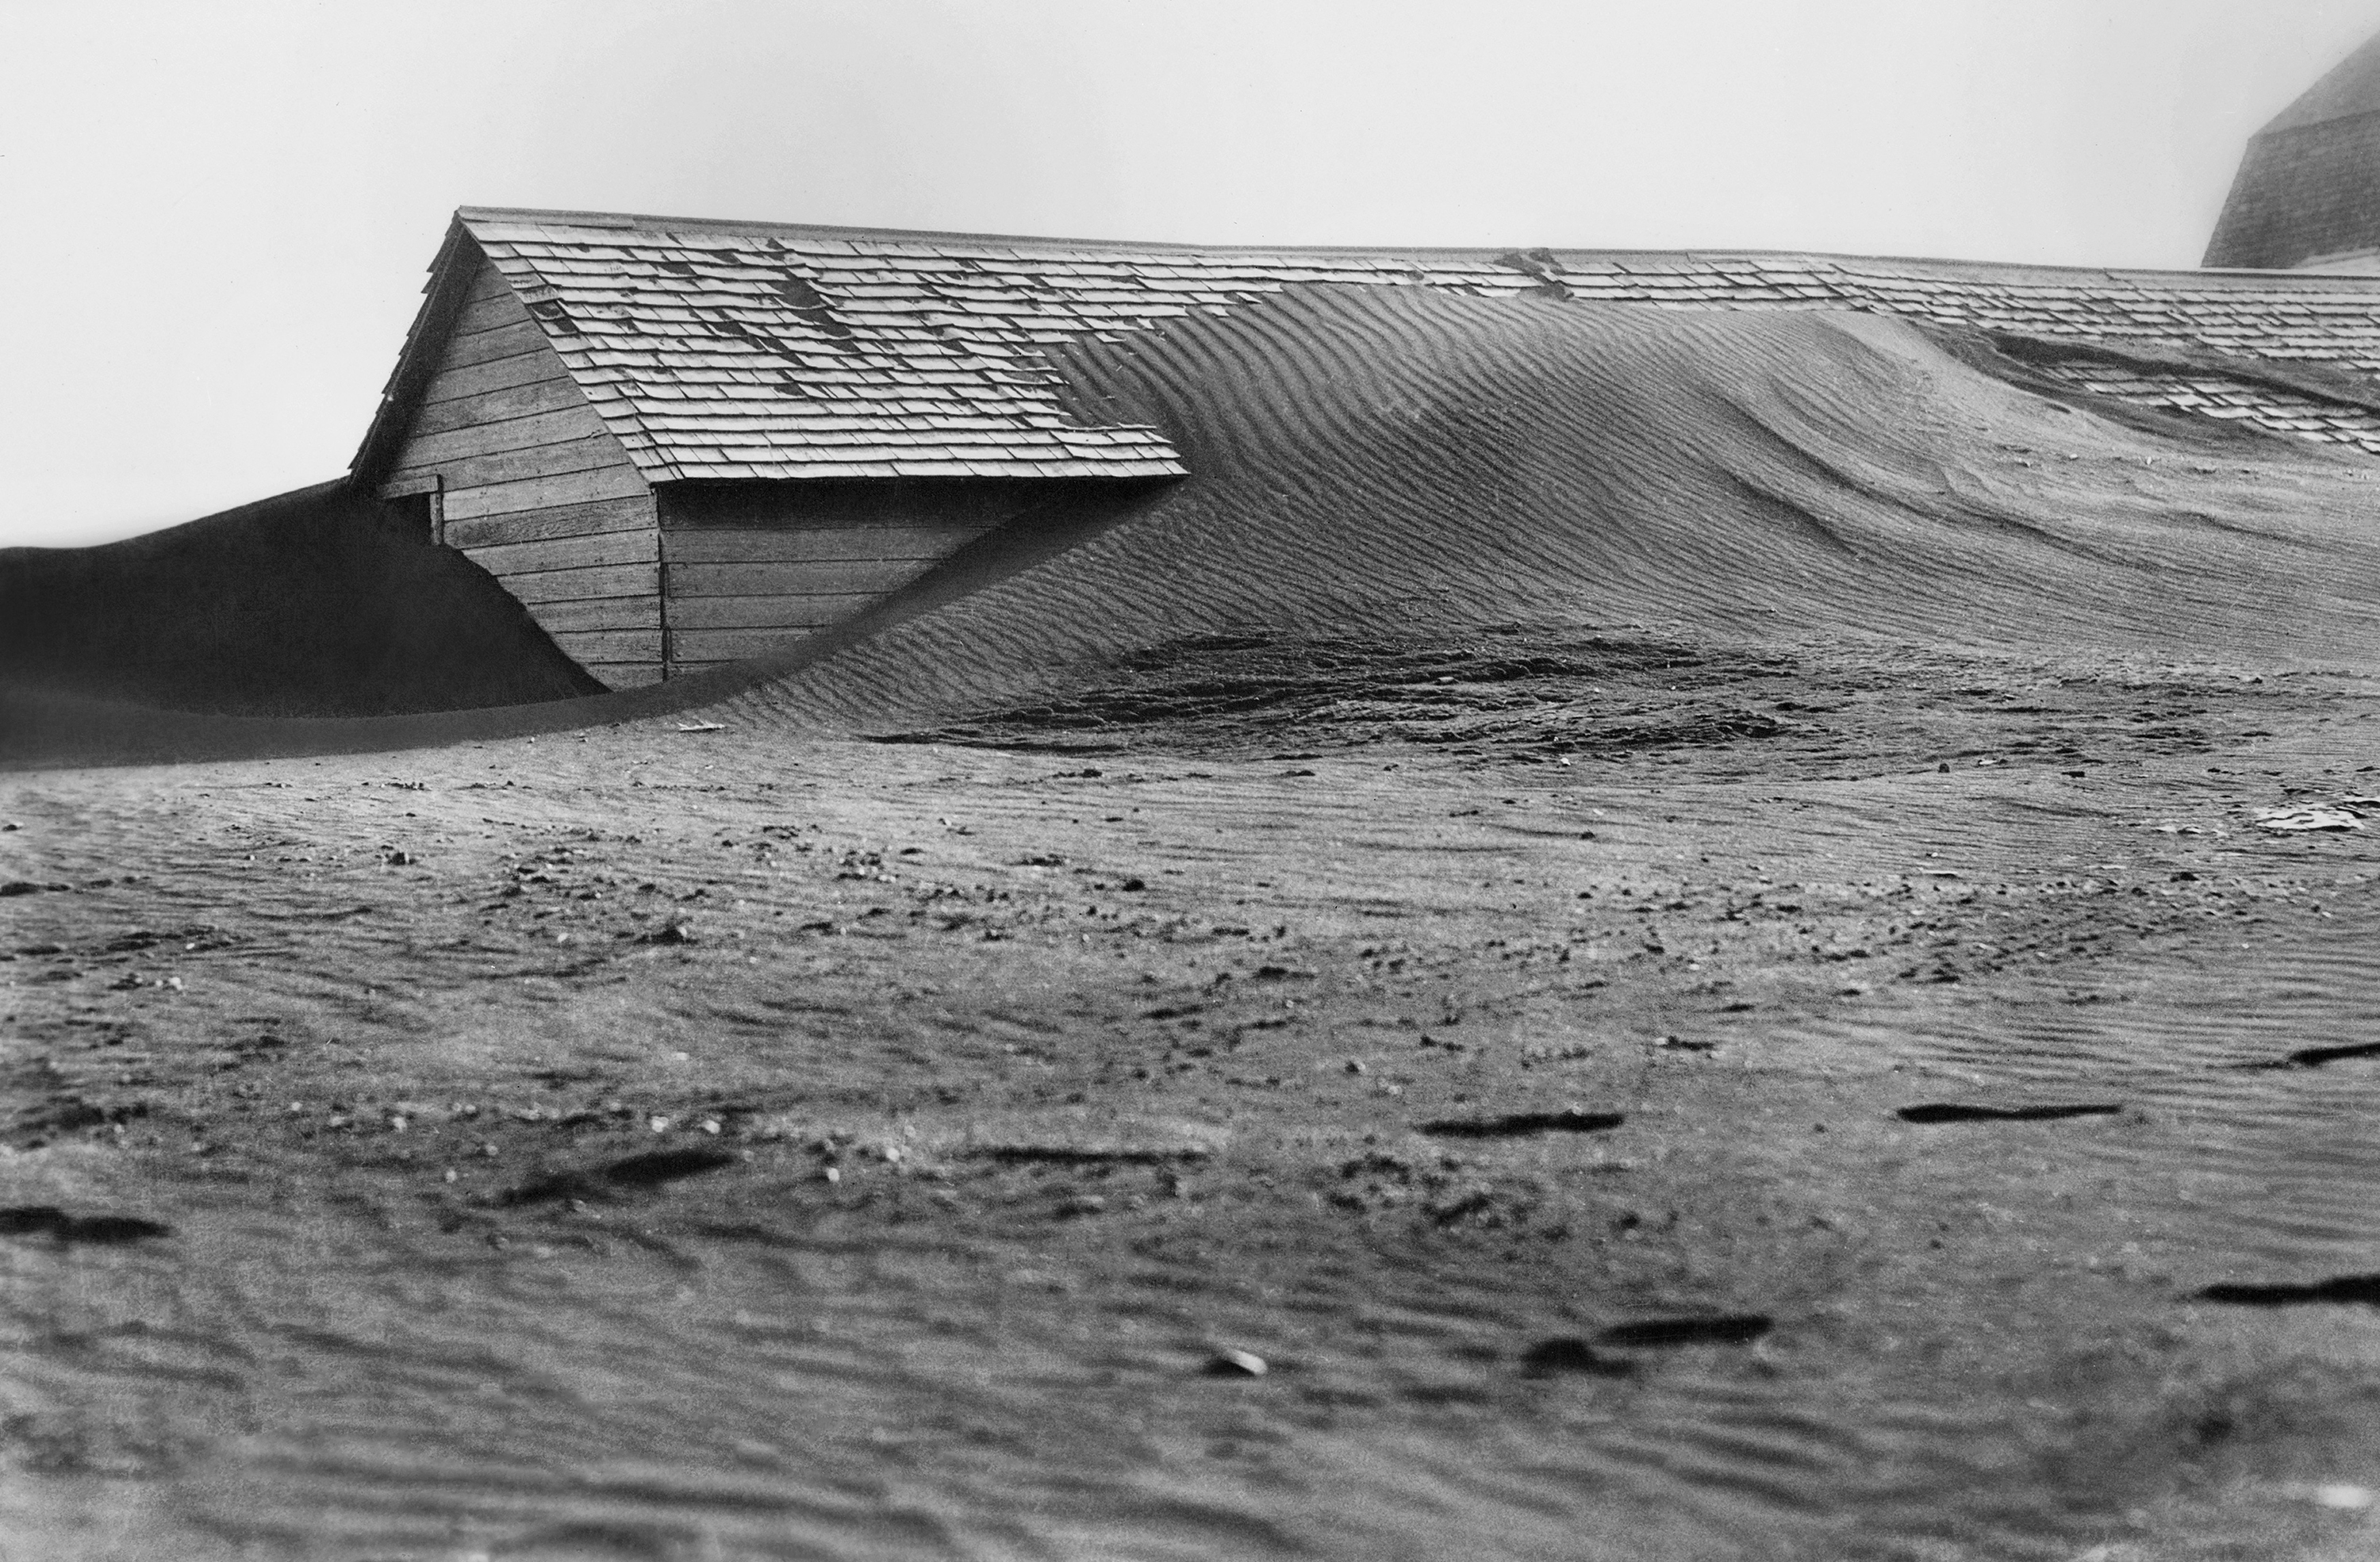 South Dakota was one of the places that saw severe soil erosion from wind during the Dust Bowl of the 1930s. (Universal History Archive/Universal Images Group via Getty Images)